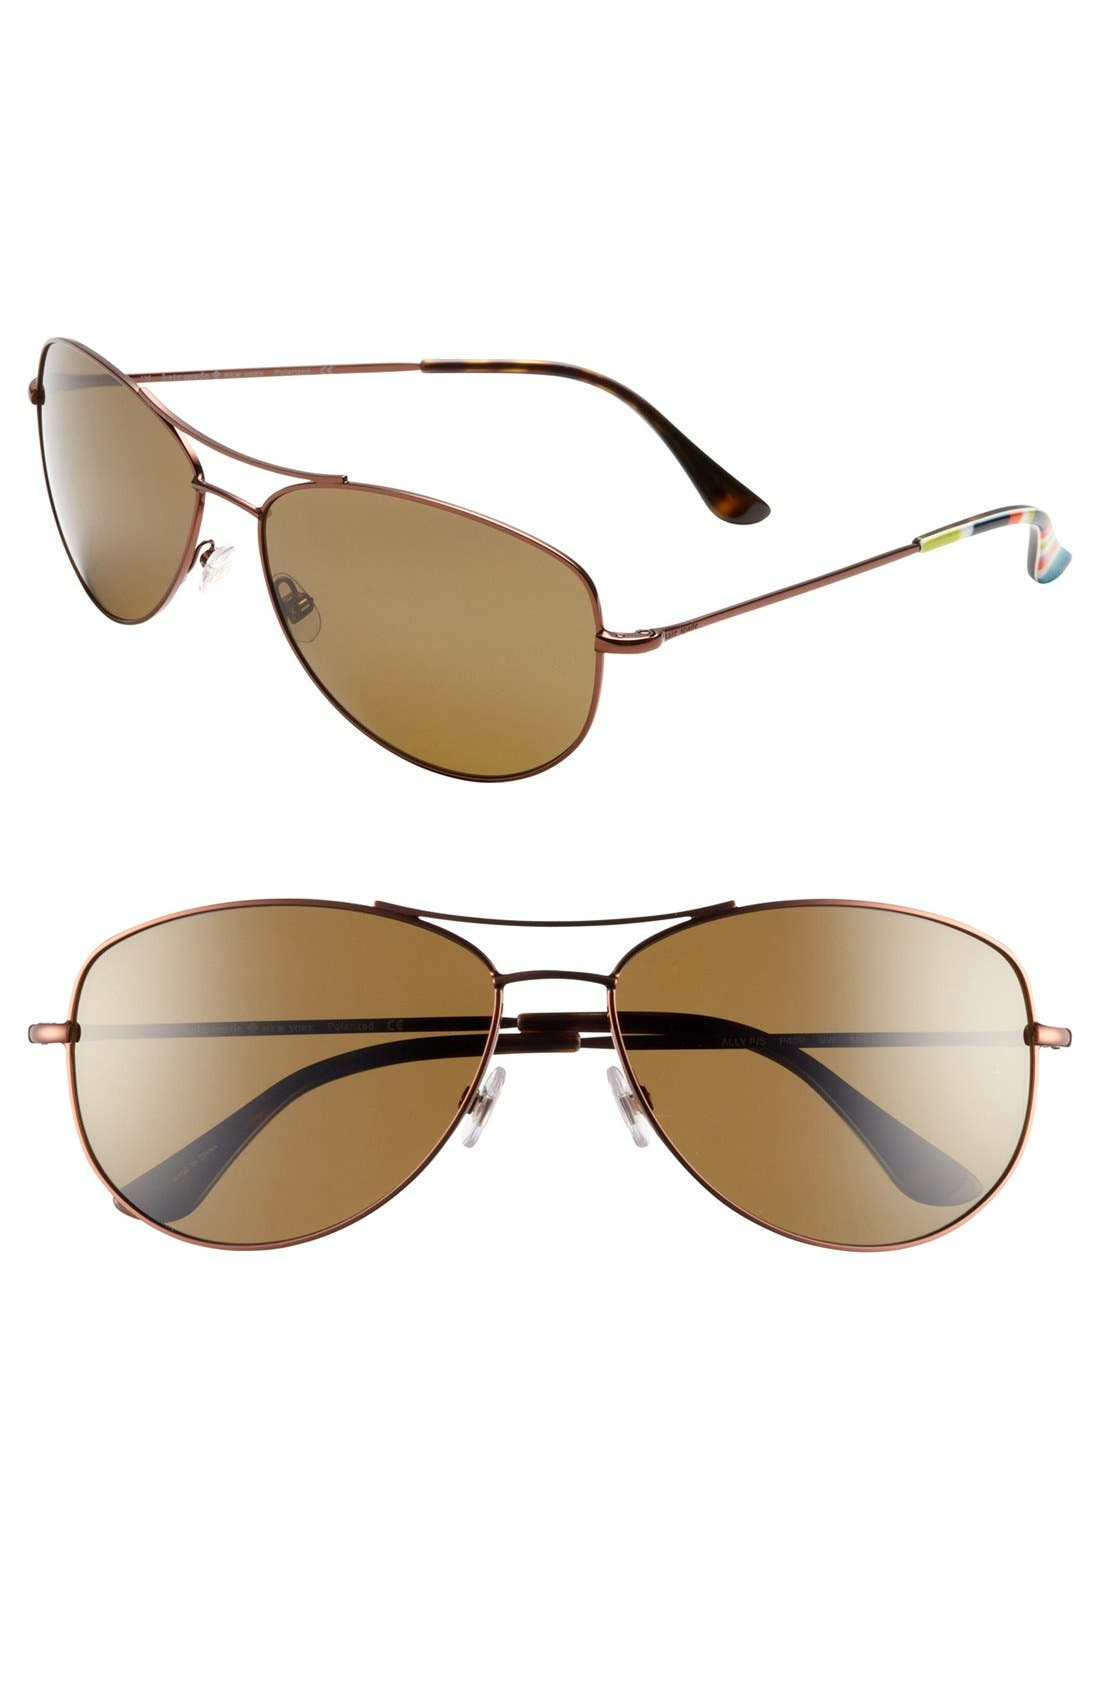 Alternate Image 1 Selected - kate spade new york 'ally' 60mm polarized metal aviator sunglasses